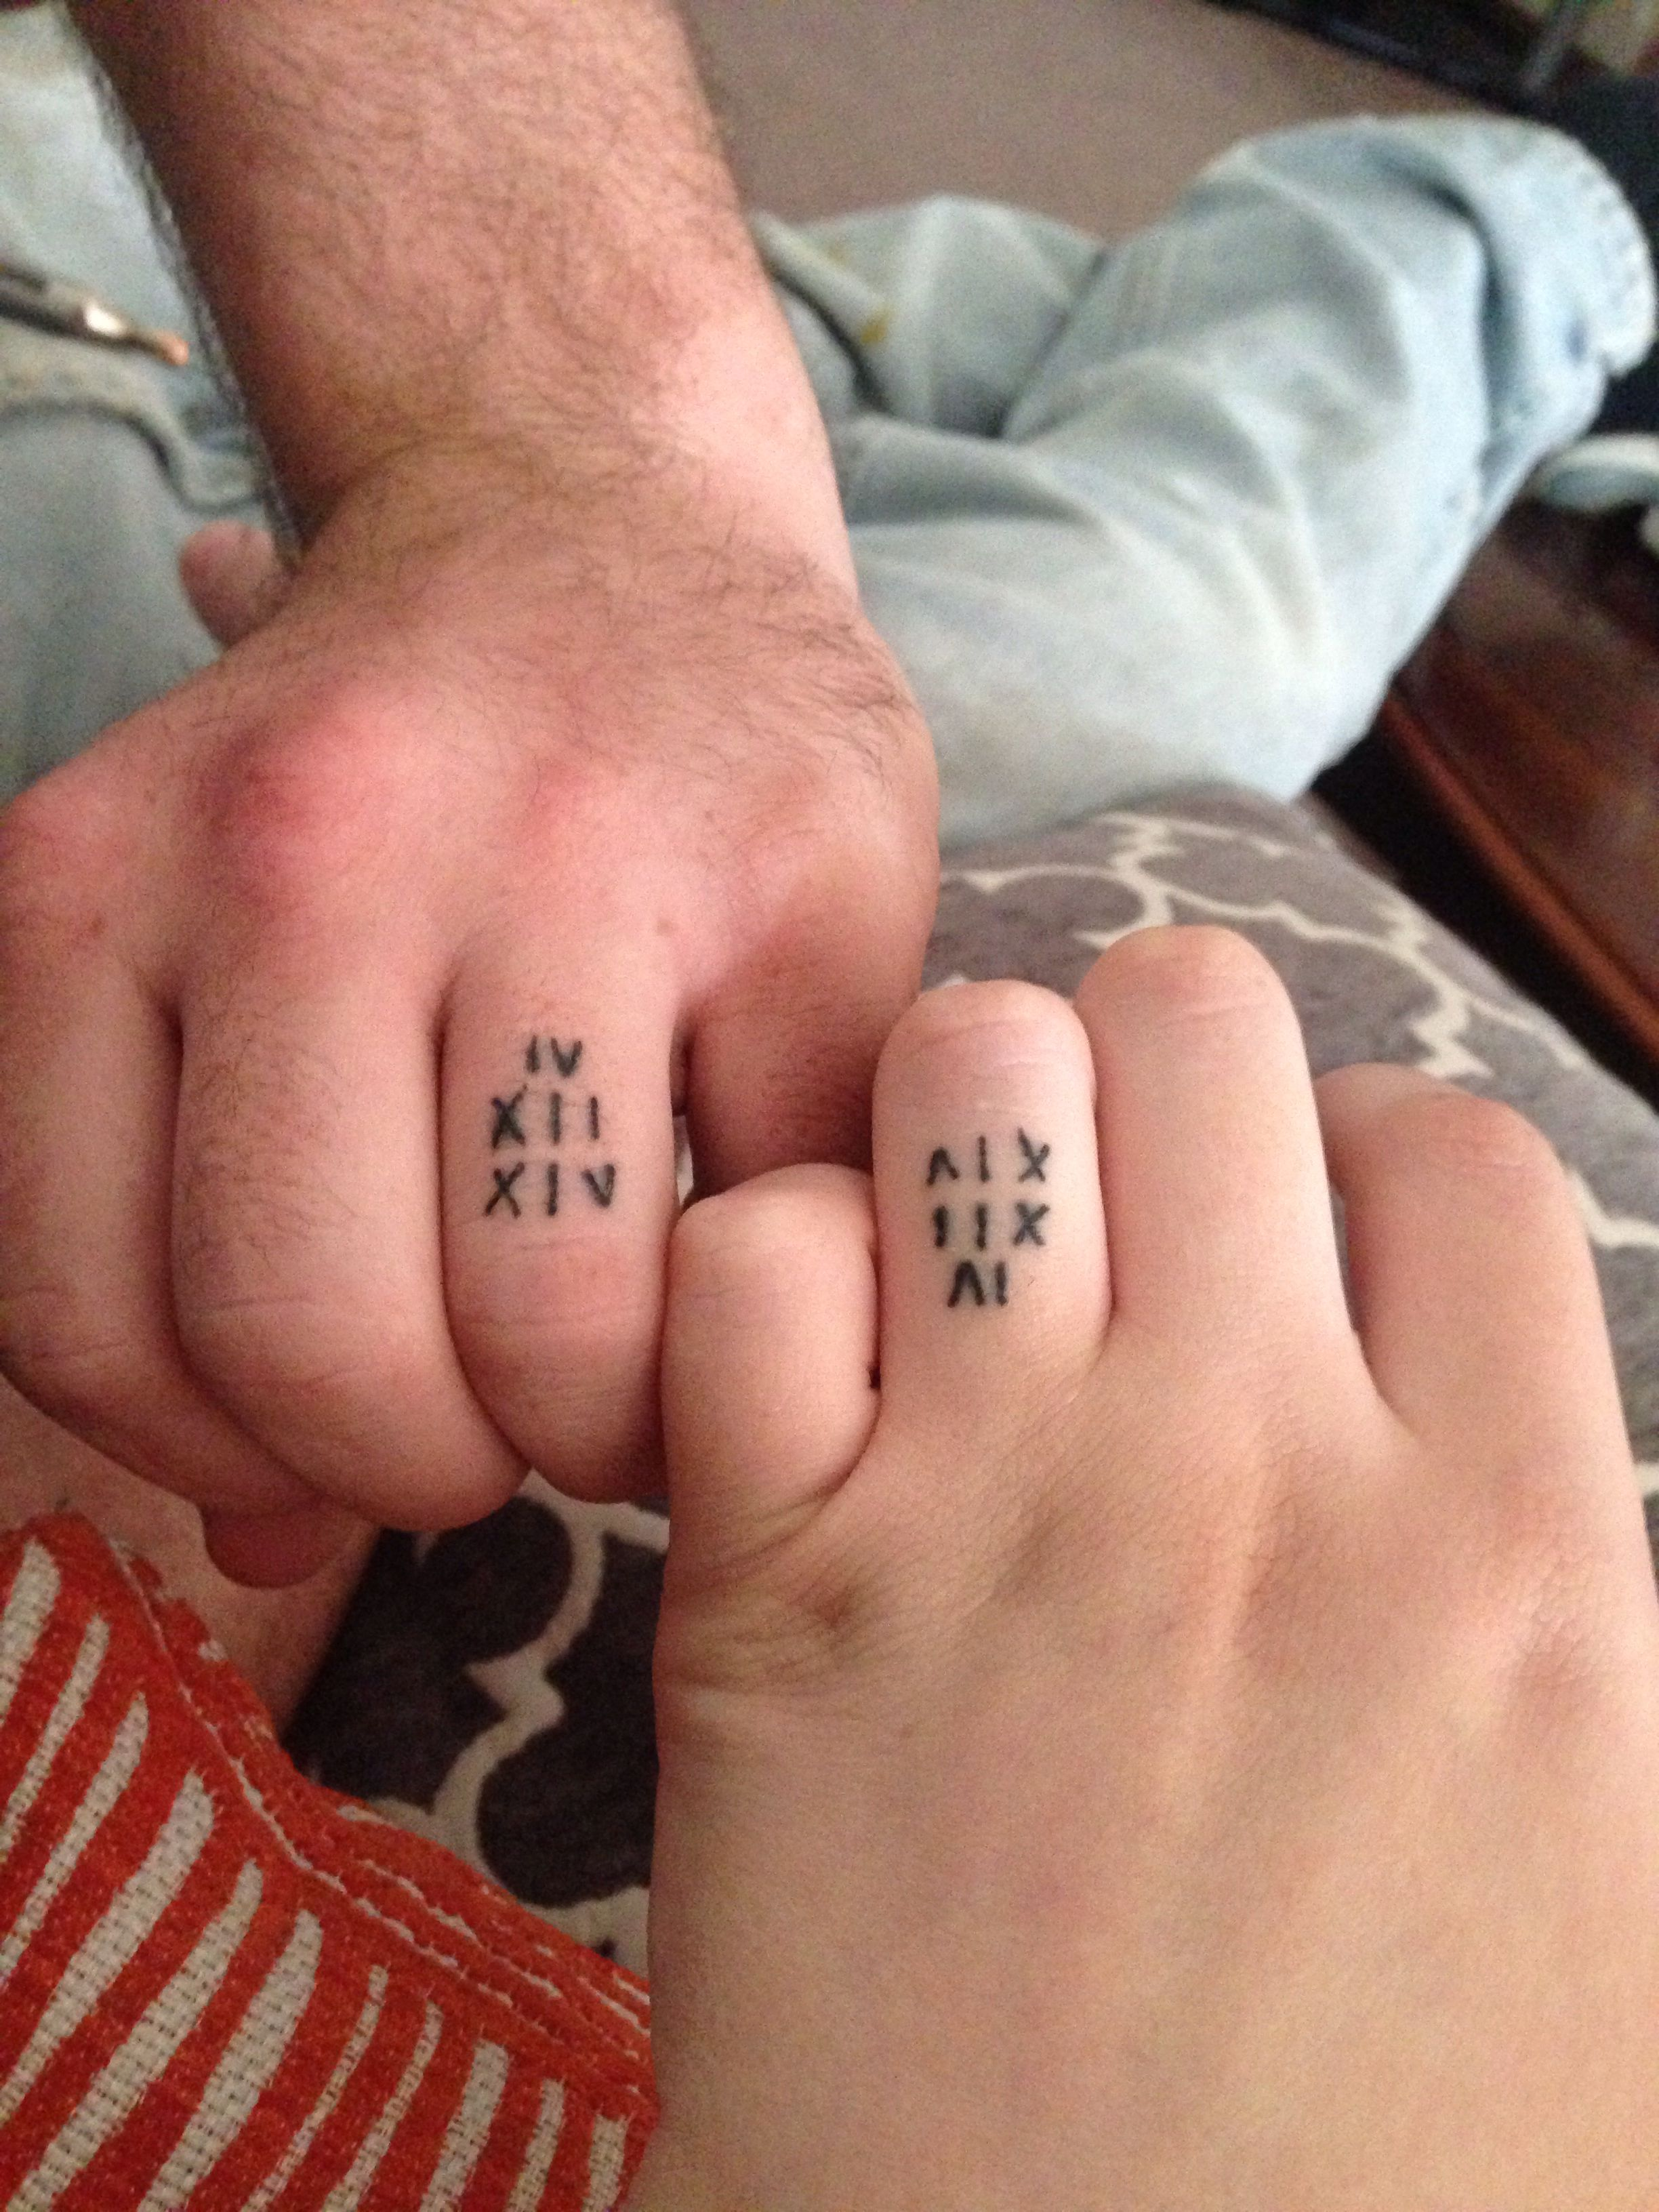 55 romantic wedding ring finger tattoo designs and ideas - Ring Finger Tattoos Roman Numerals For Wedding Date